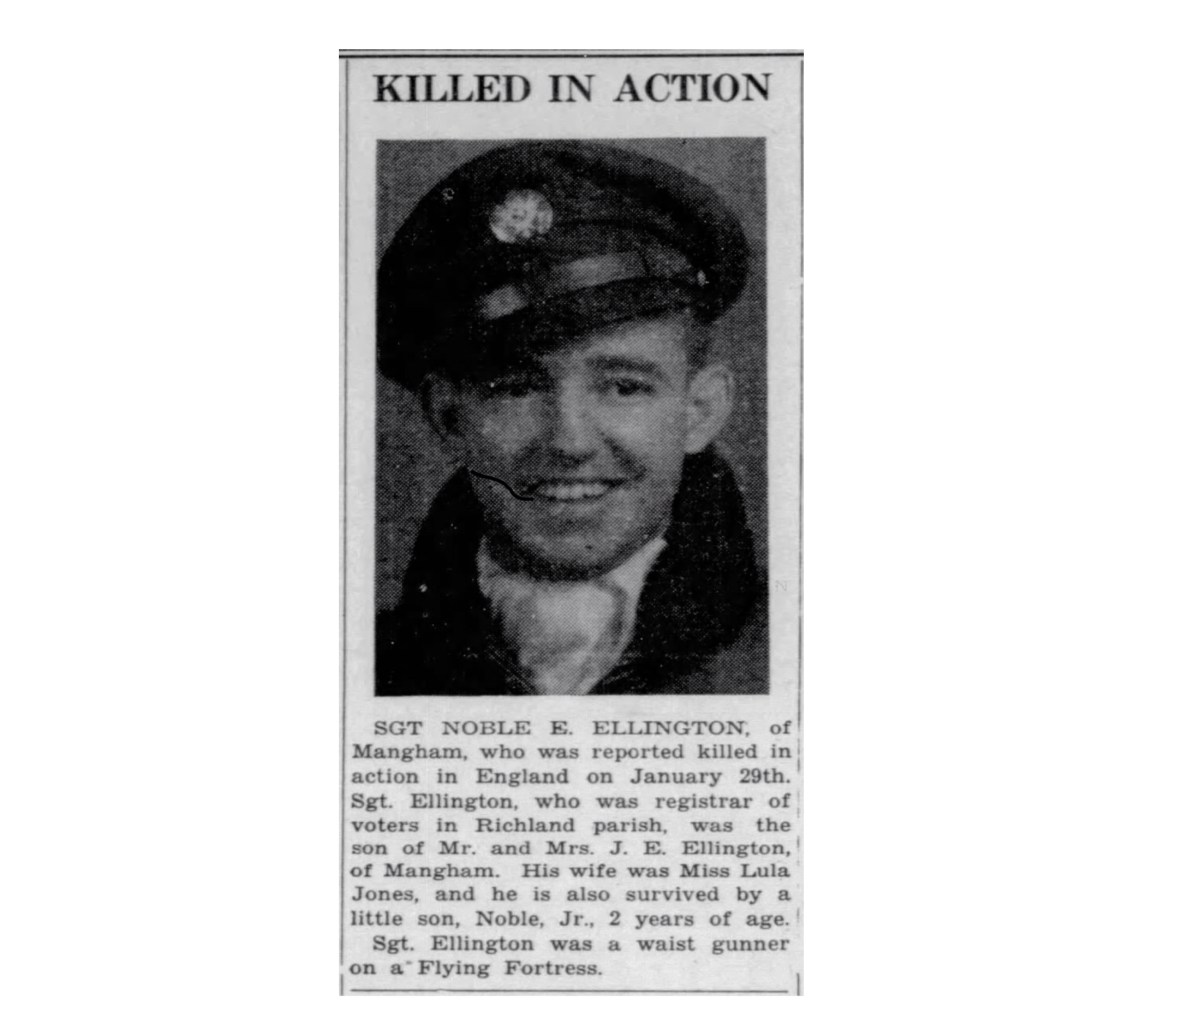 Sgt. Noble E. Ellington Killed In Action #WWII 1945